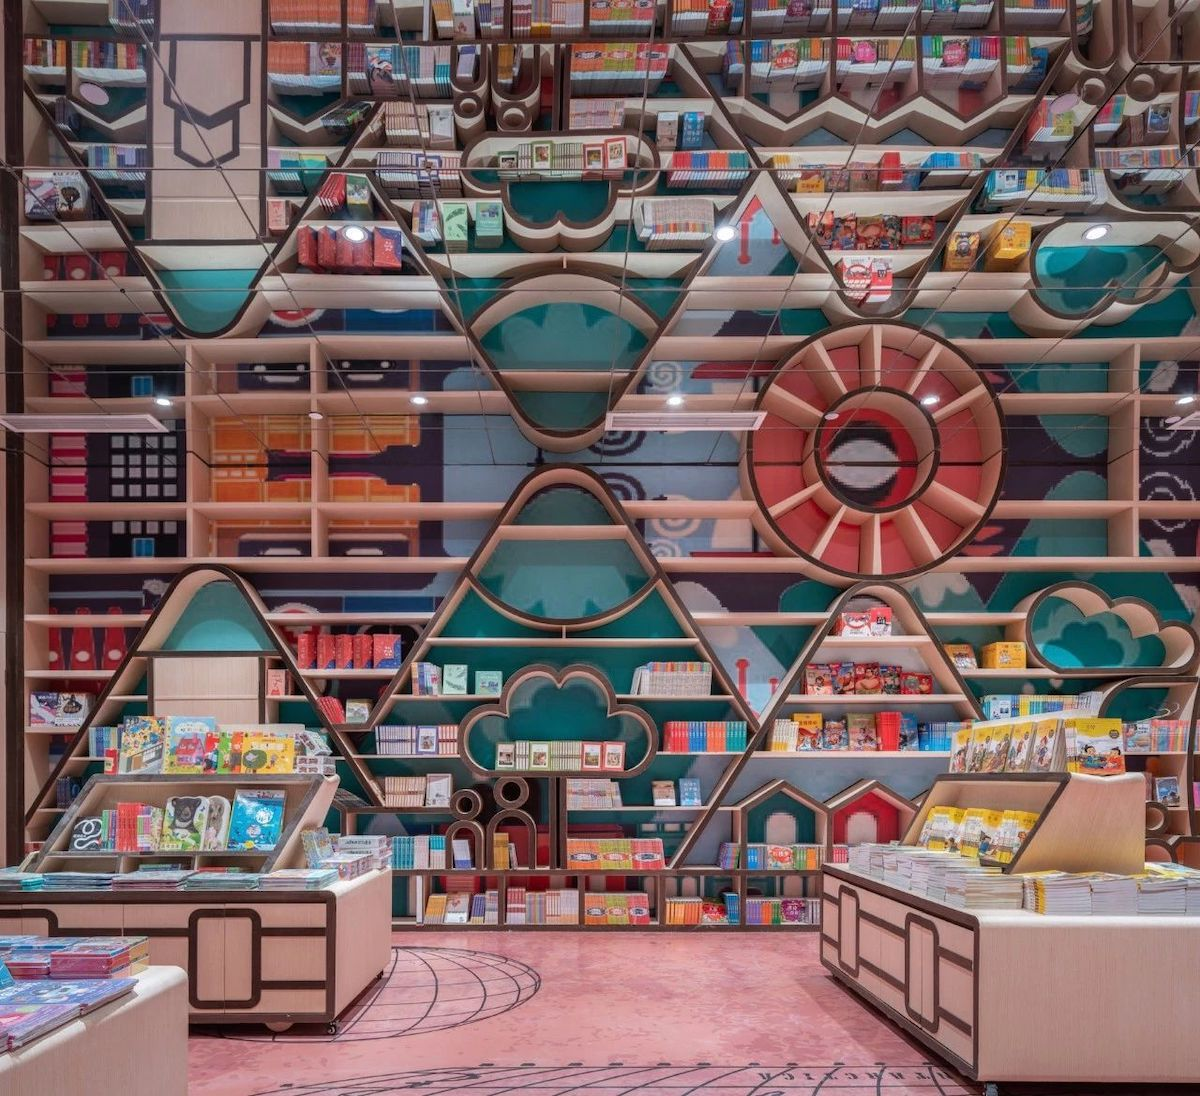 Children's Bookstore Interior